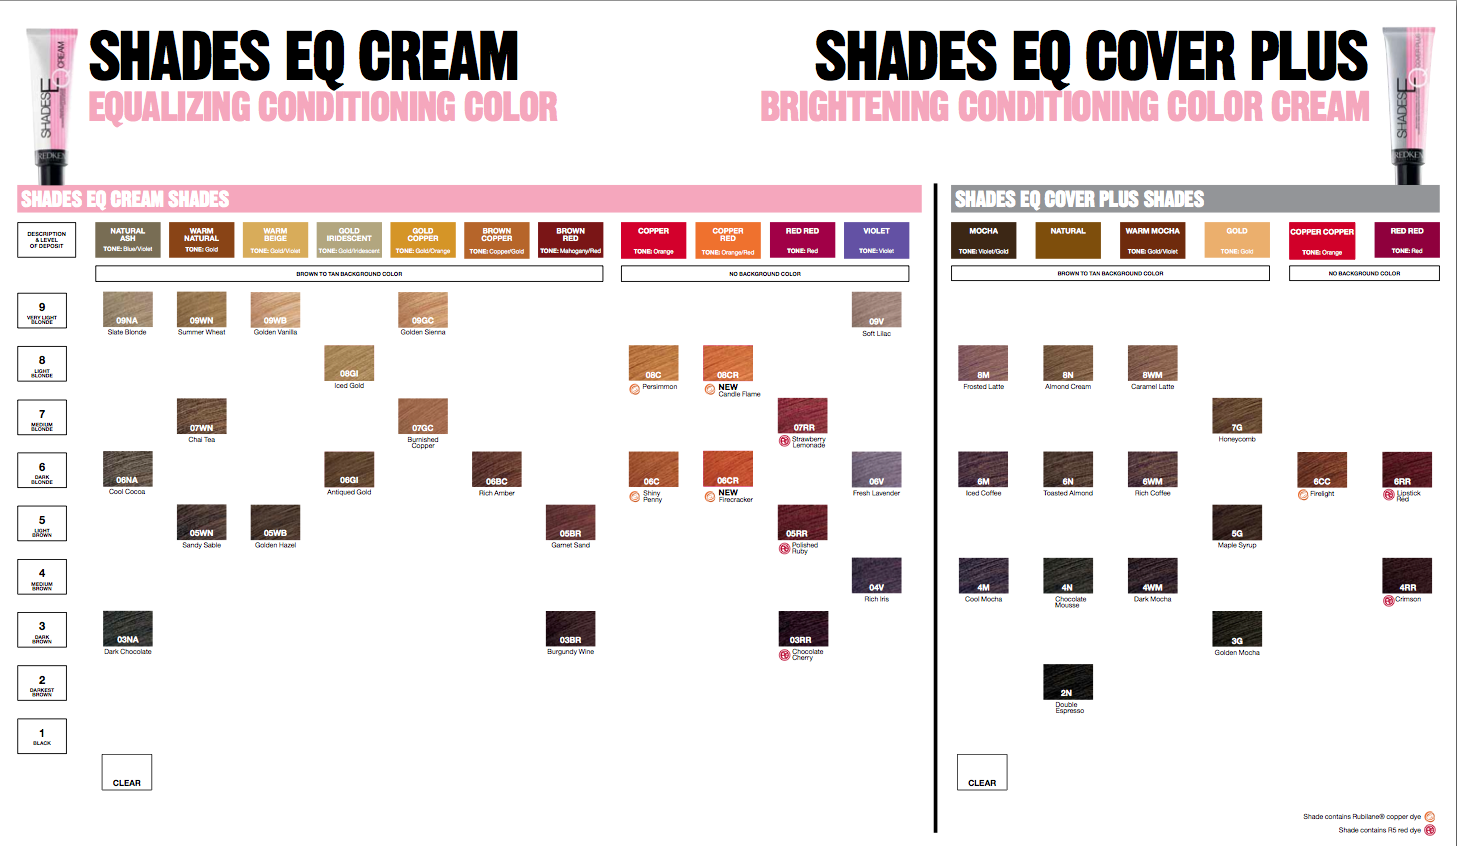 Redken Shades Eq Cream Color Chart Pictures To Pin On